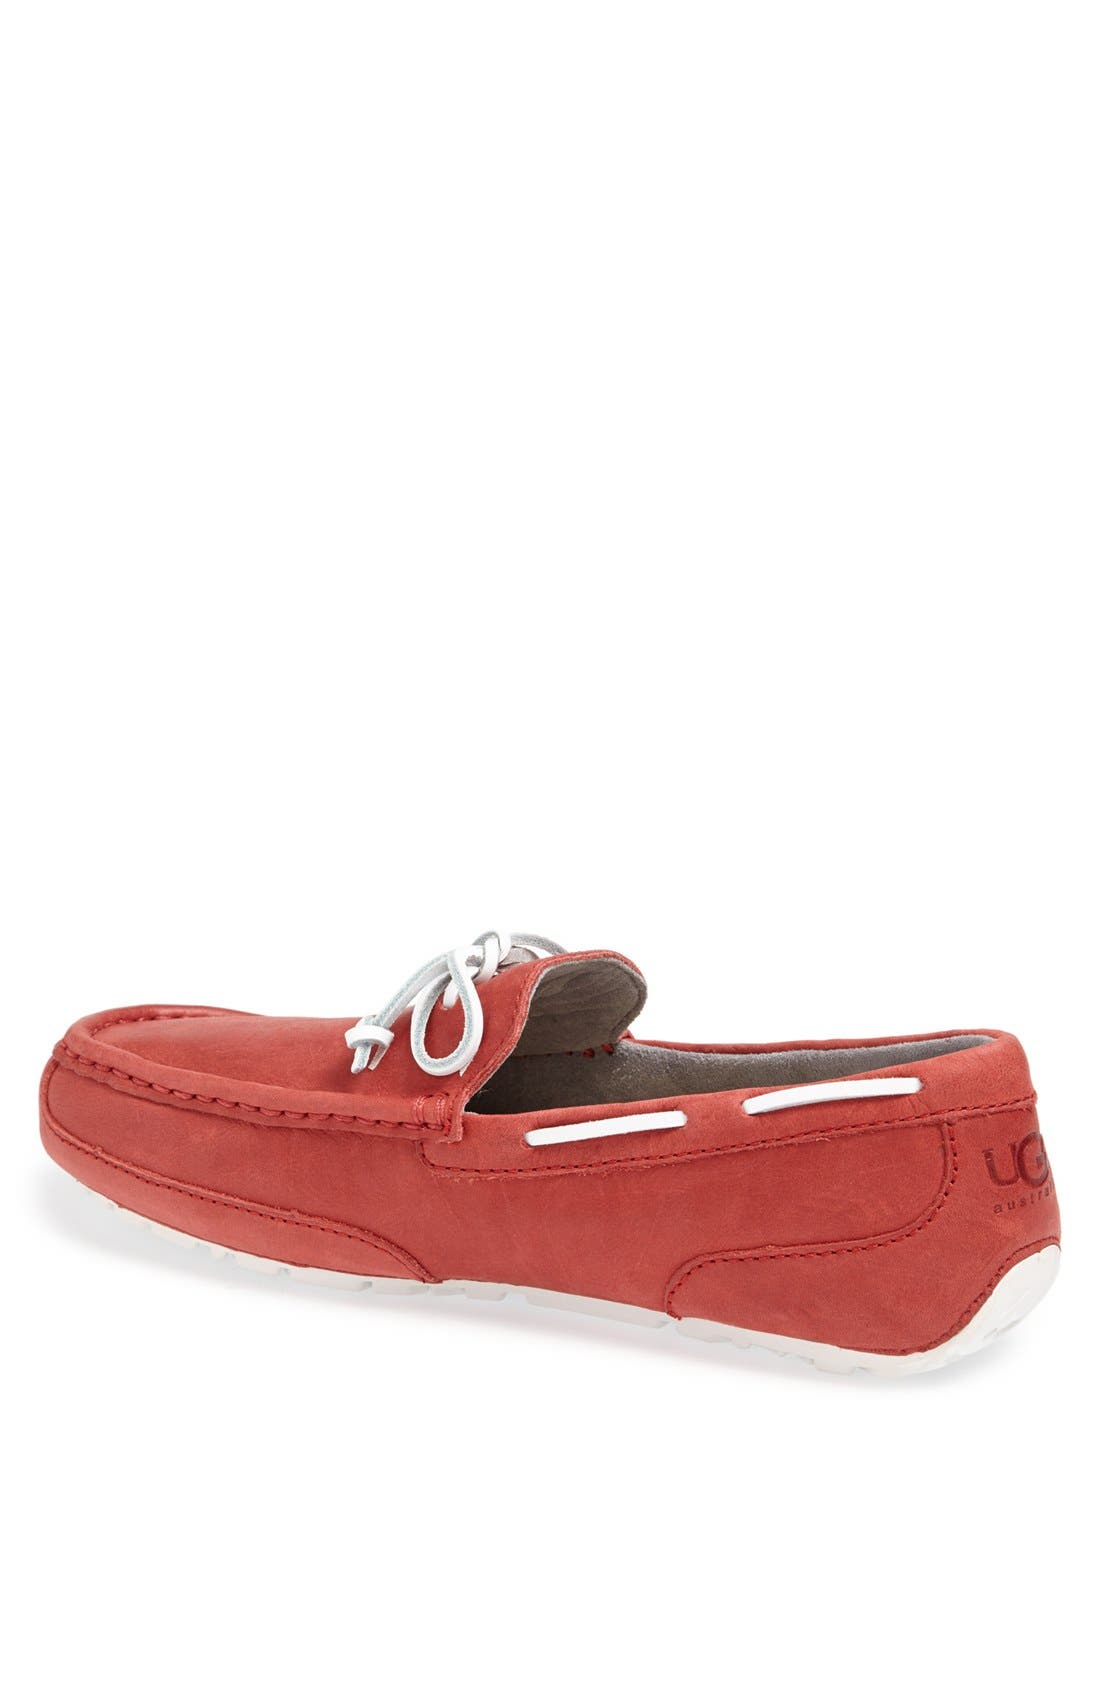 'Chester' Driving Loafer,                             Alternate thumbnail 36, color,